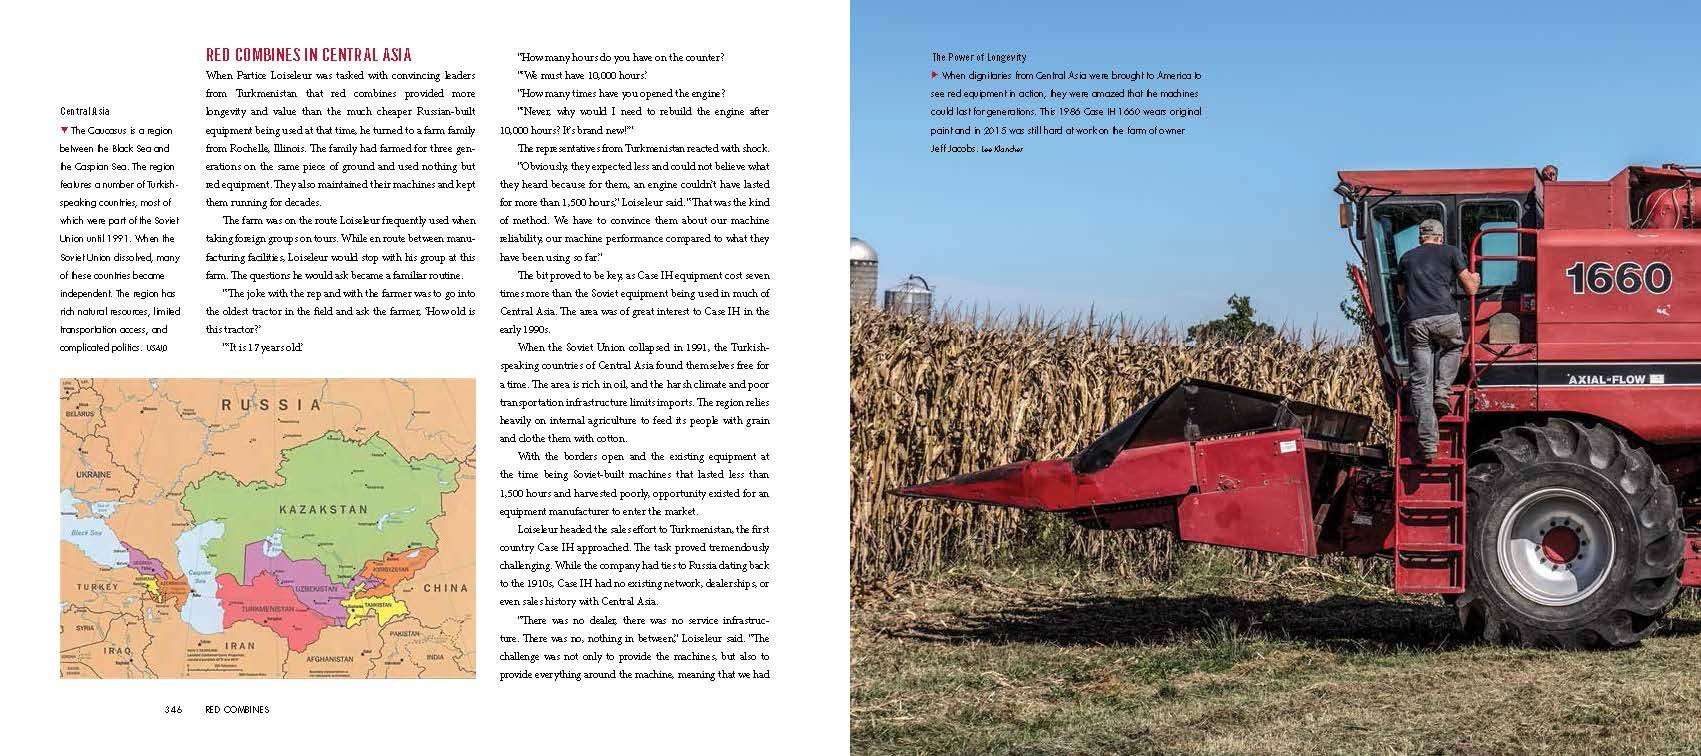 Red Combines 1915-2015: The Authoritative Guide to International Harvester and Case IH Combines and Harvesting Equipment by Octane Press LLC (Image #10)